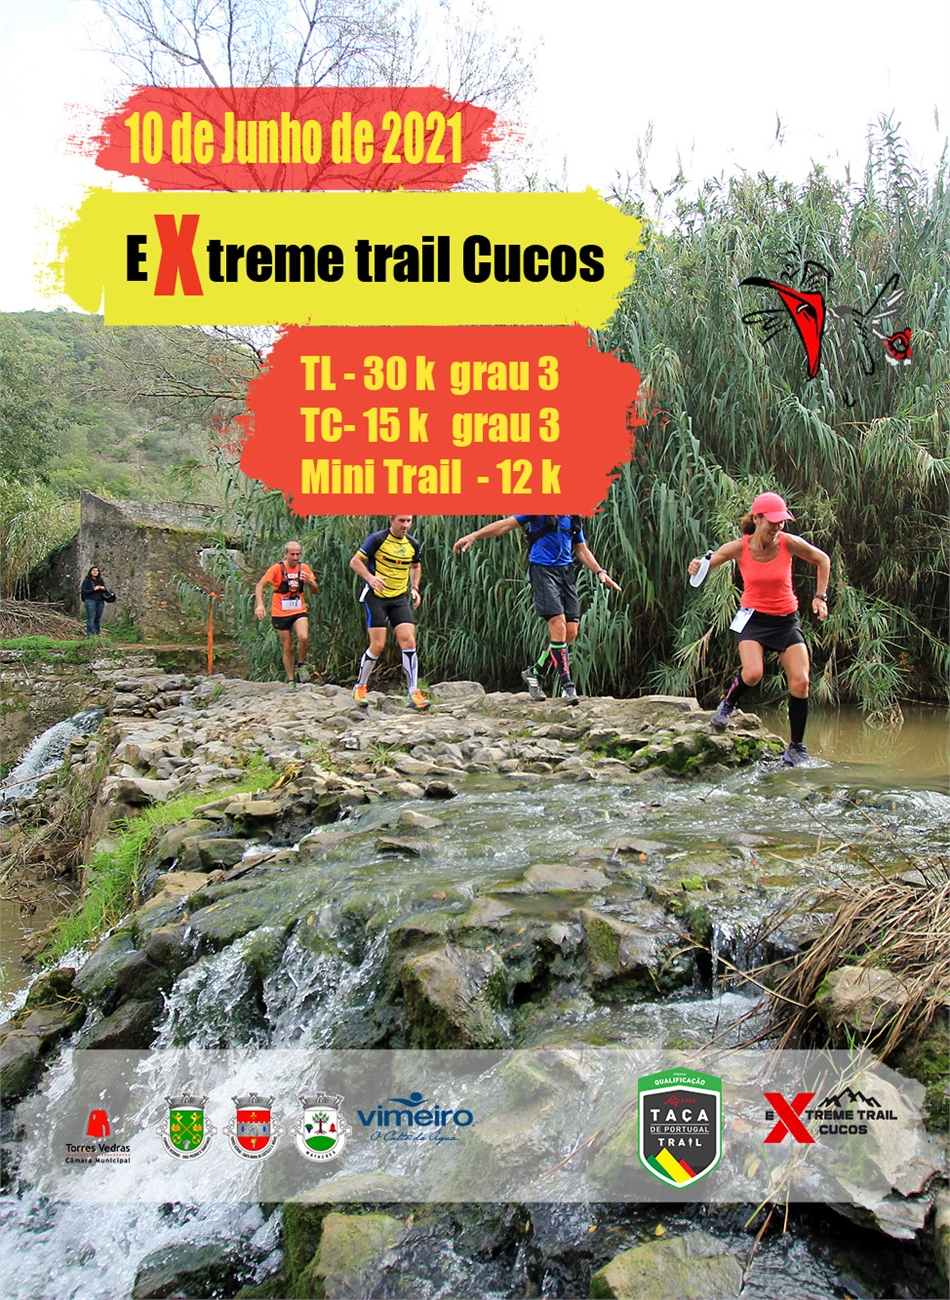 Extreme Trail Cucos 2021 - Eventos - TURRESEVENTS